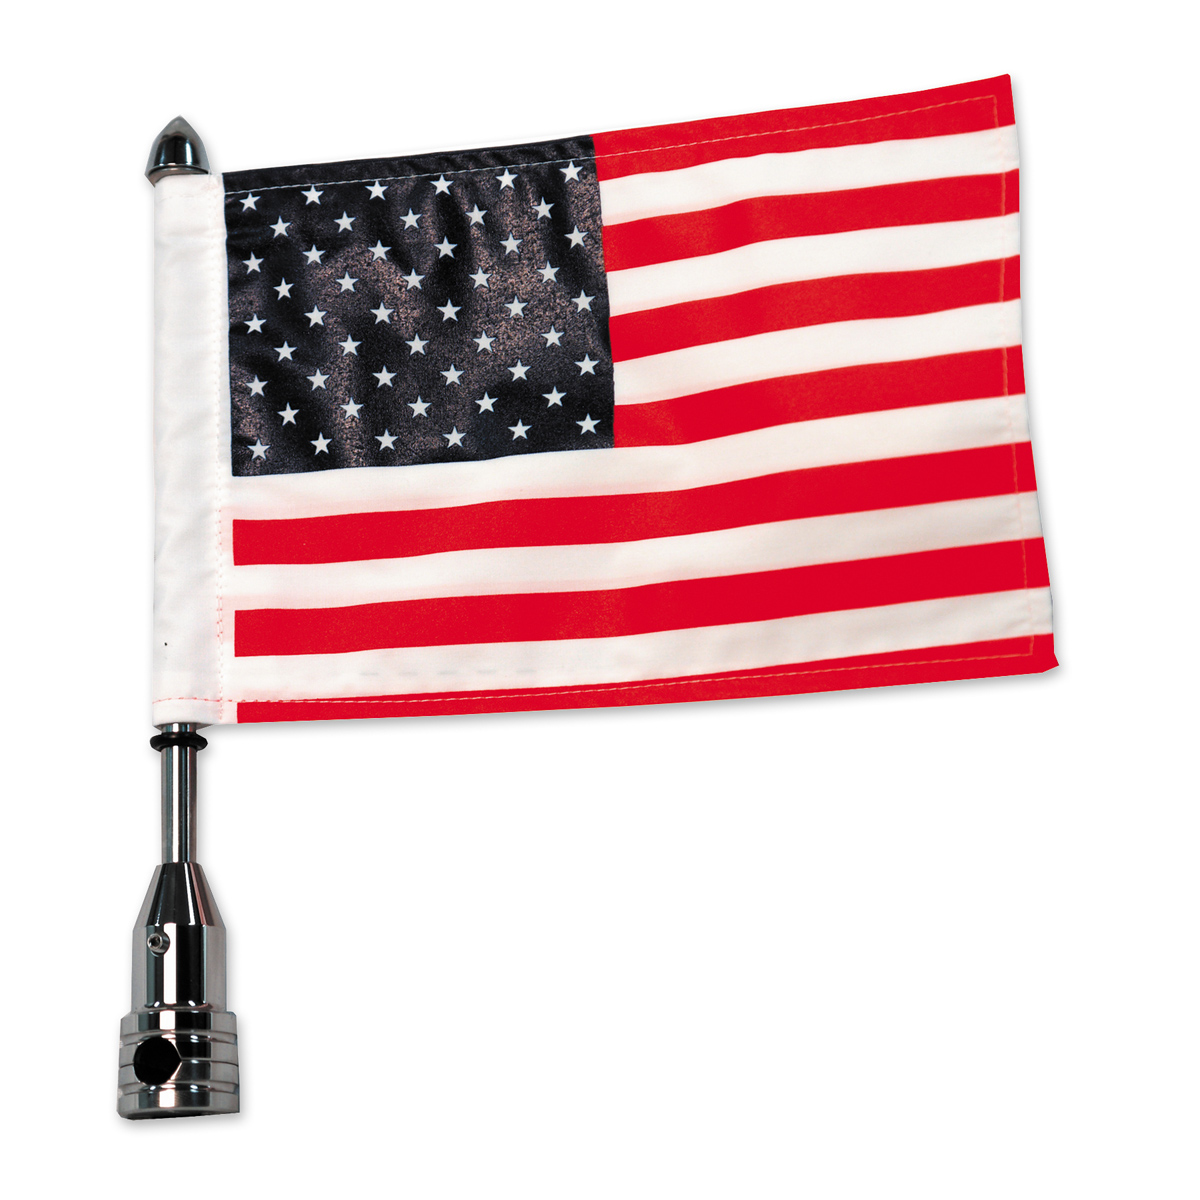 Pro Pad Tour Pack Solid Flag Mount with 10″ x 15″ American Flag